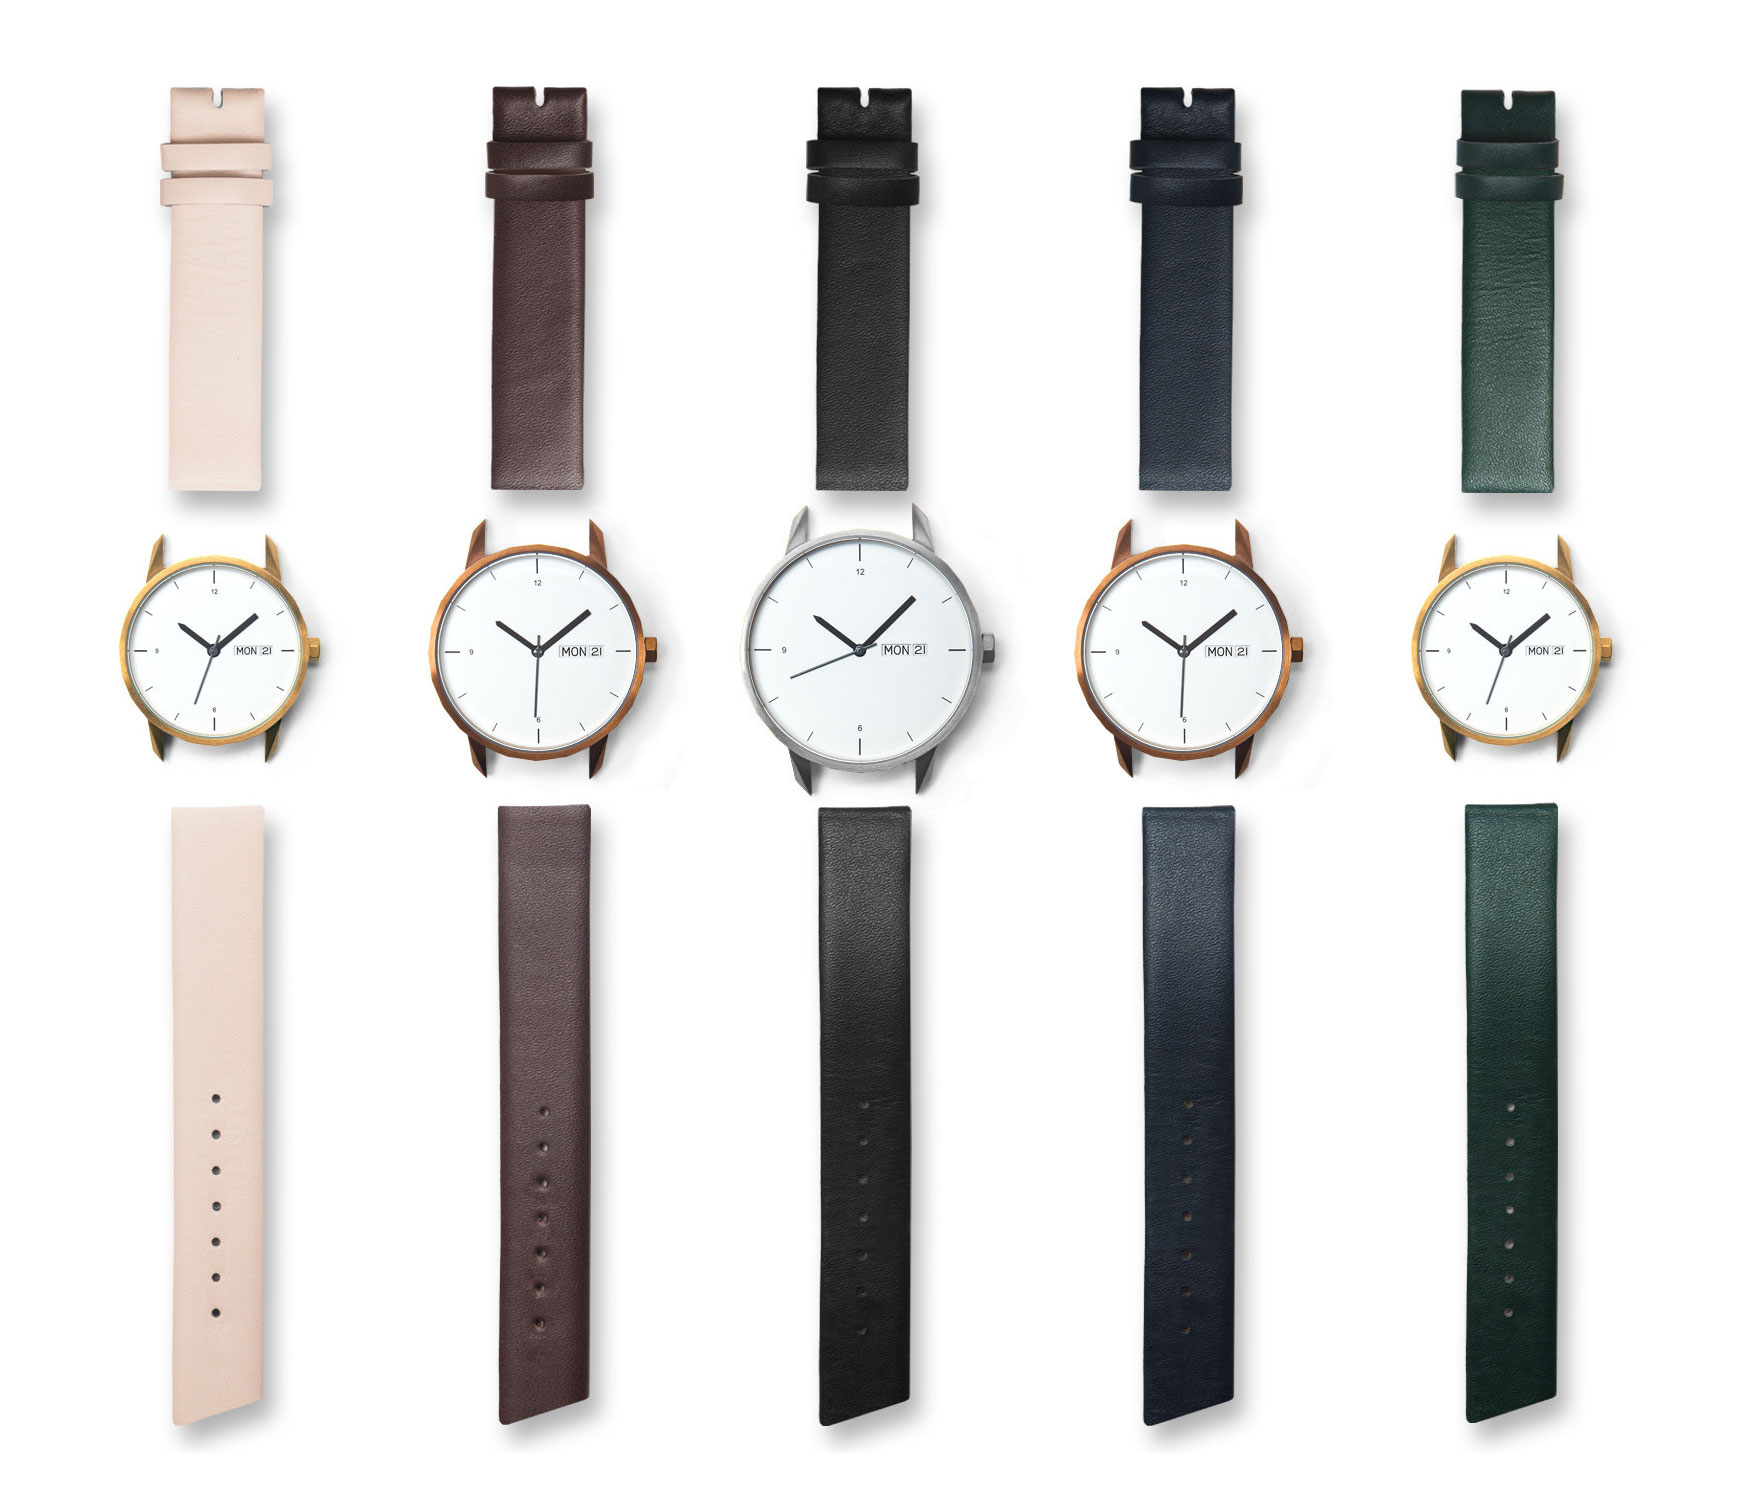 tinker-watches - daily cappuccino - lifestyle blog